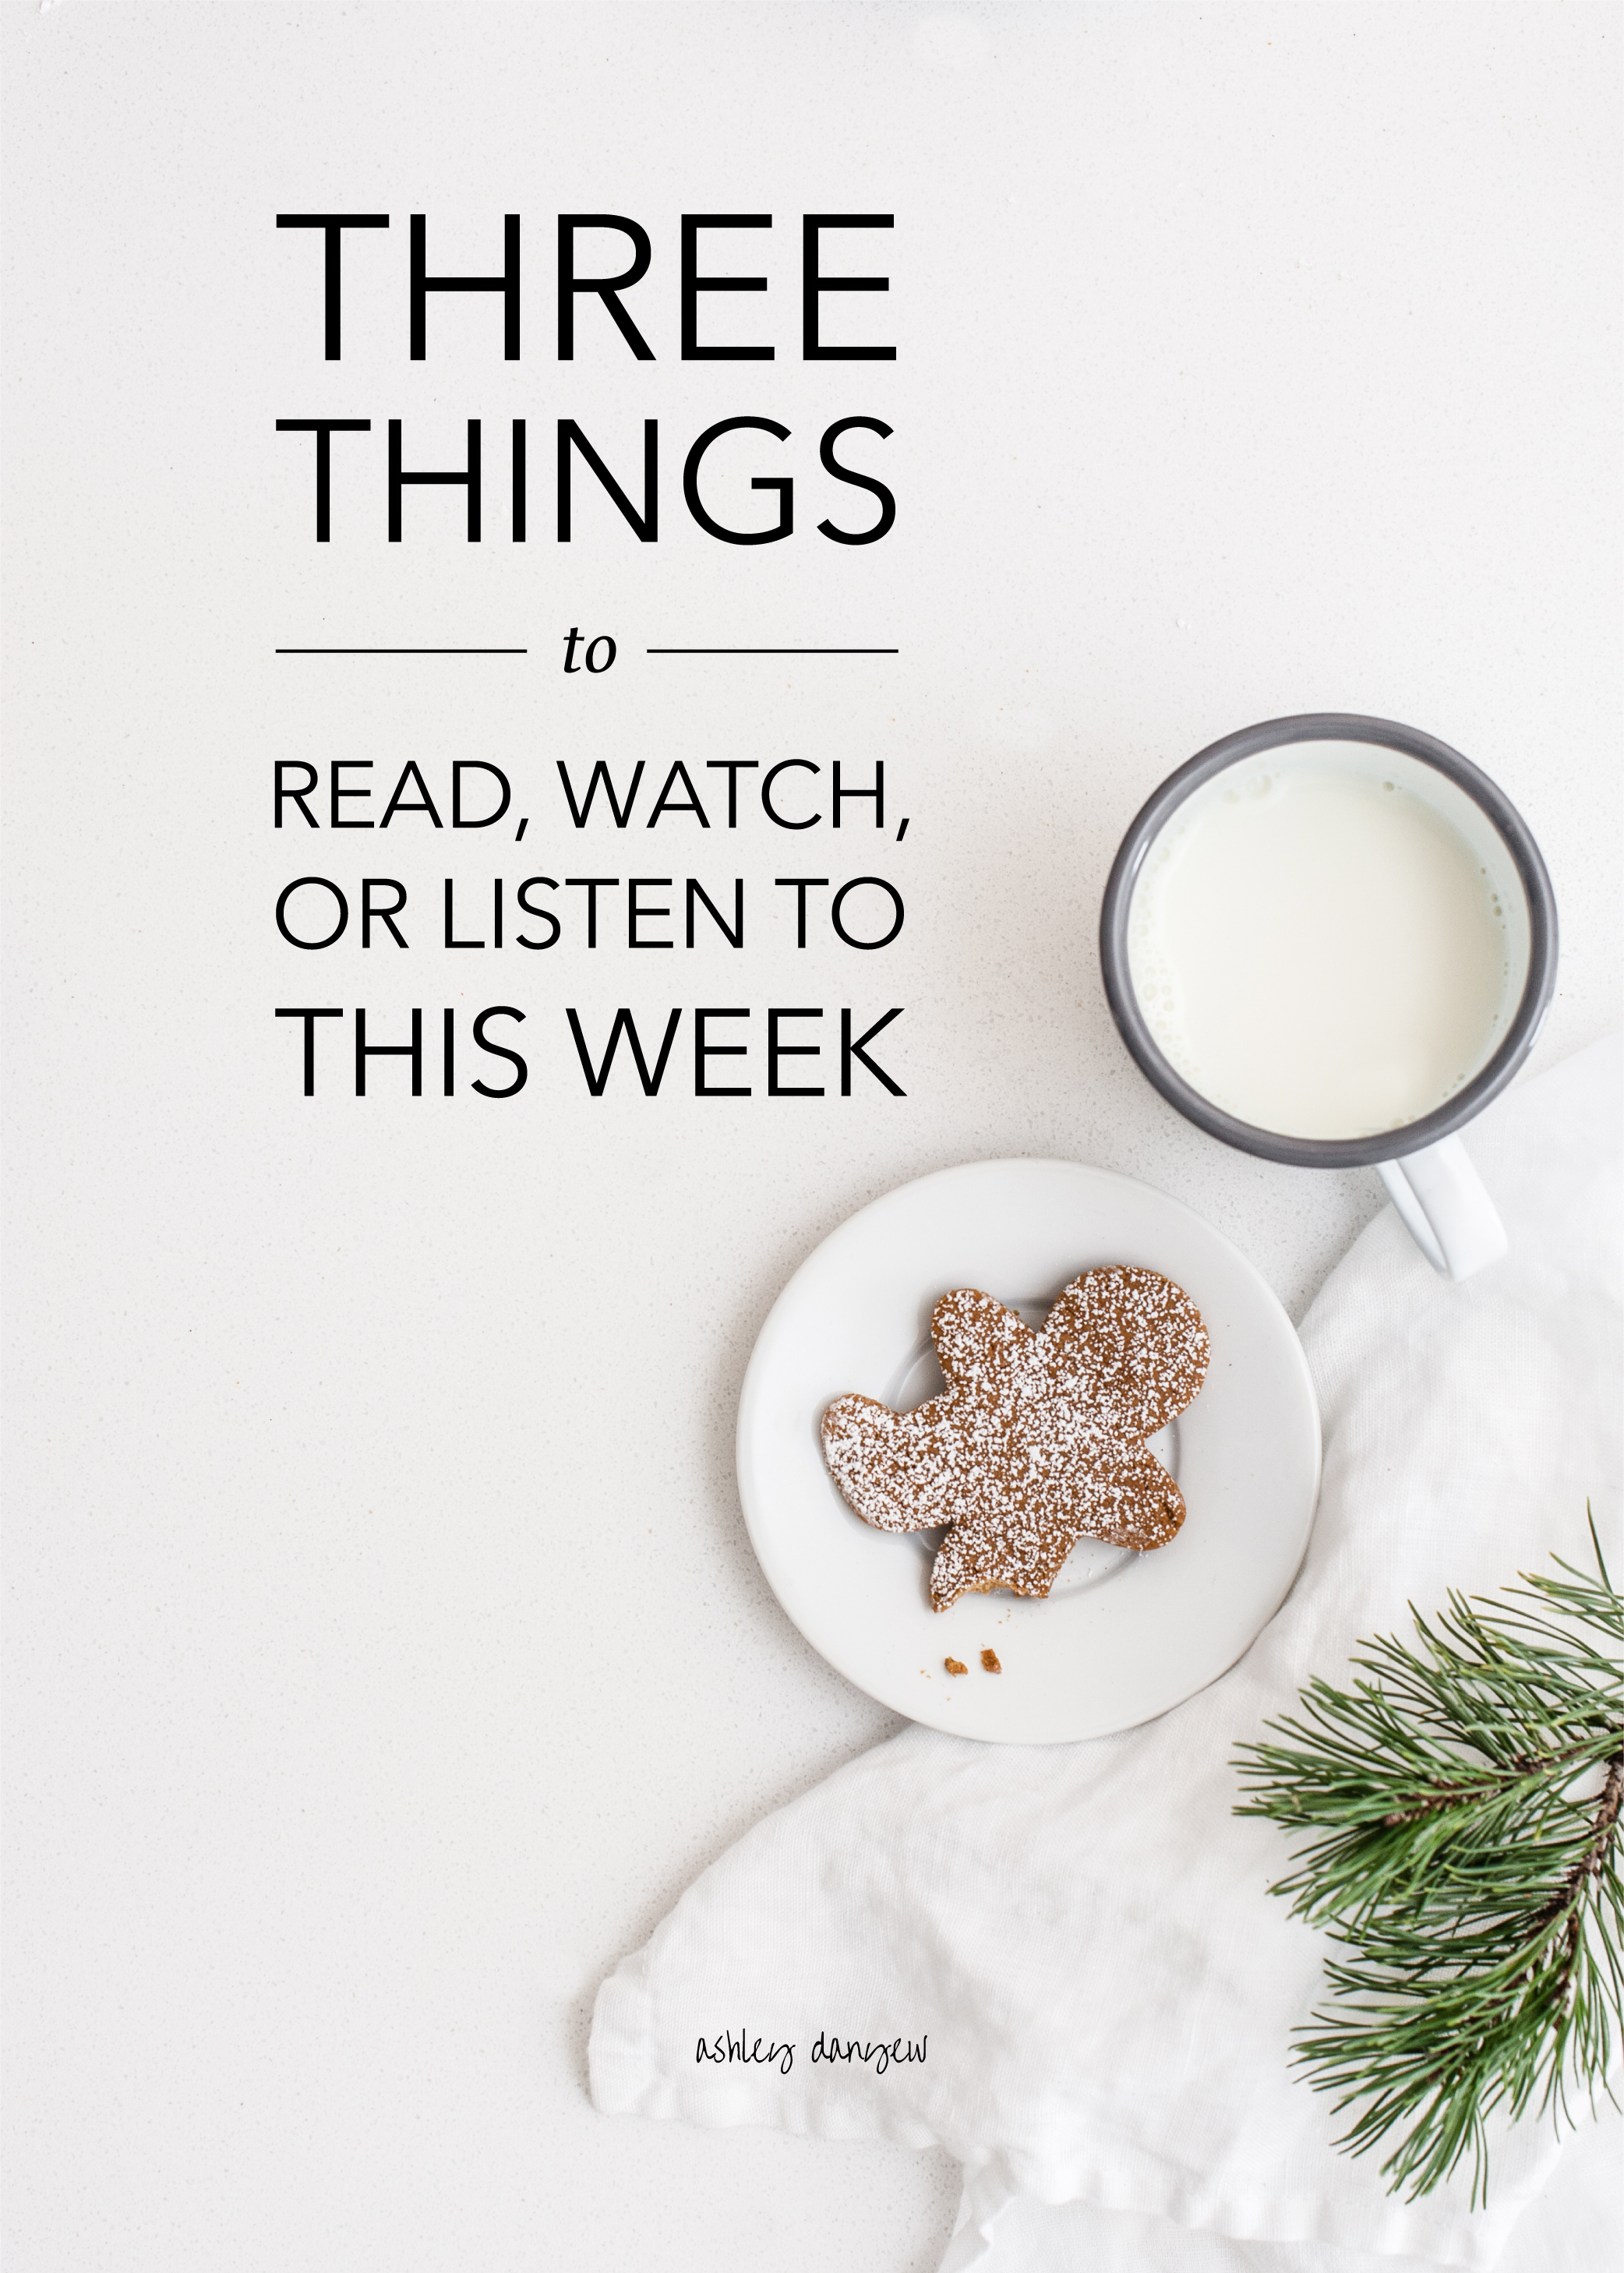 Three Things to Read, Watch, or Listen to This Week